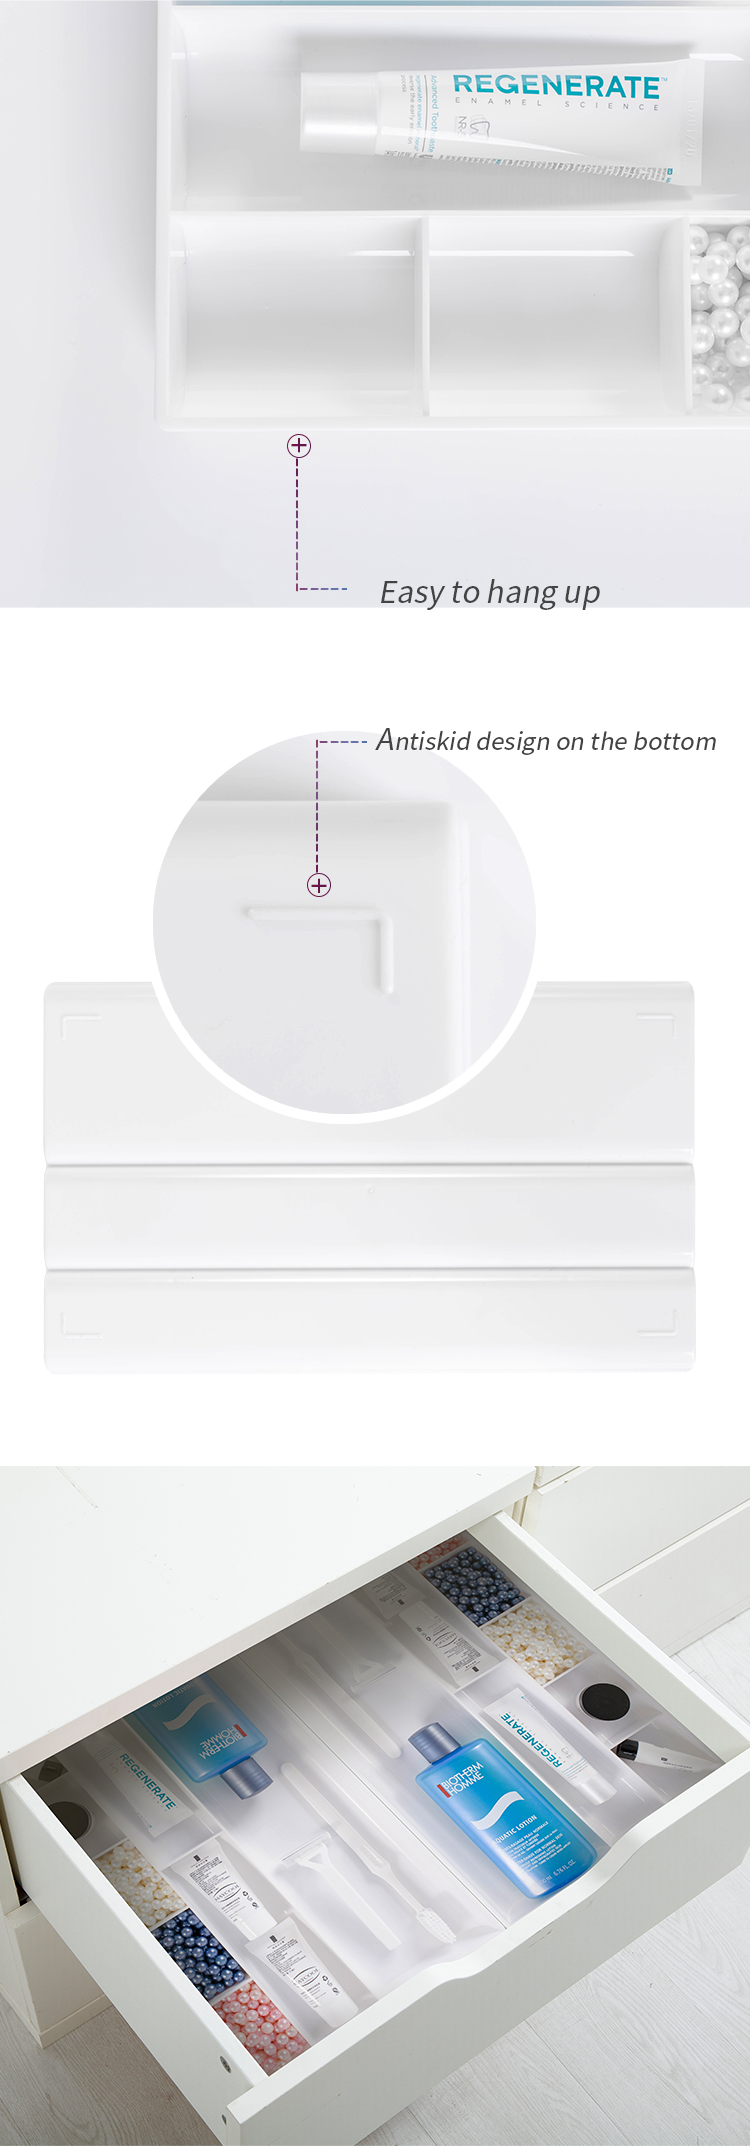 office and home desk plastic Desktop divider plastic tray  dividers  with  office desk  drawer Organizer